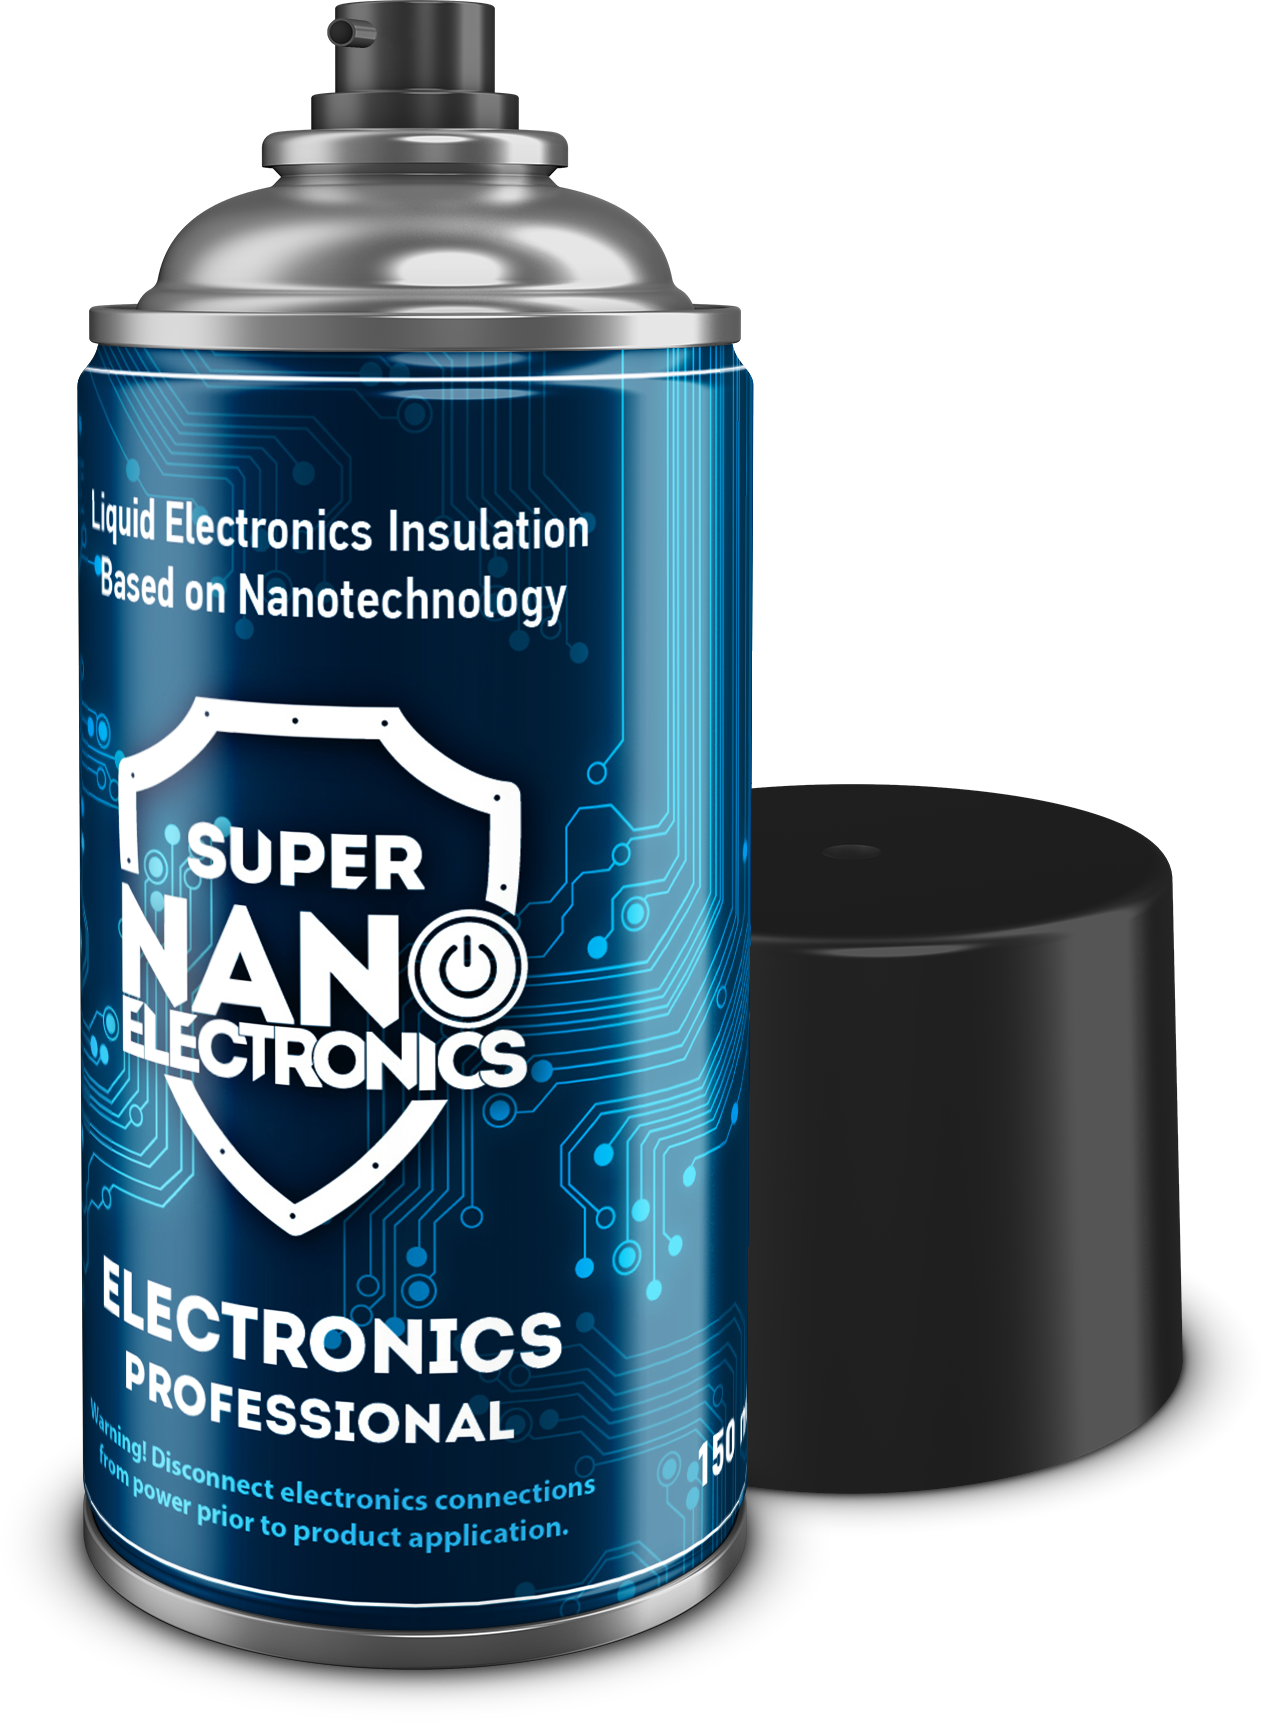 GNP Electronics Professional 150ml